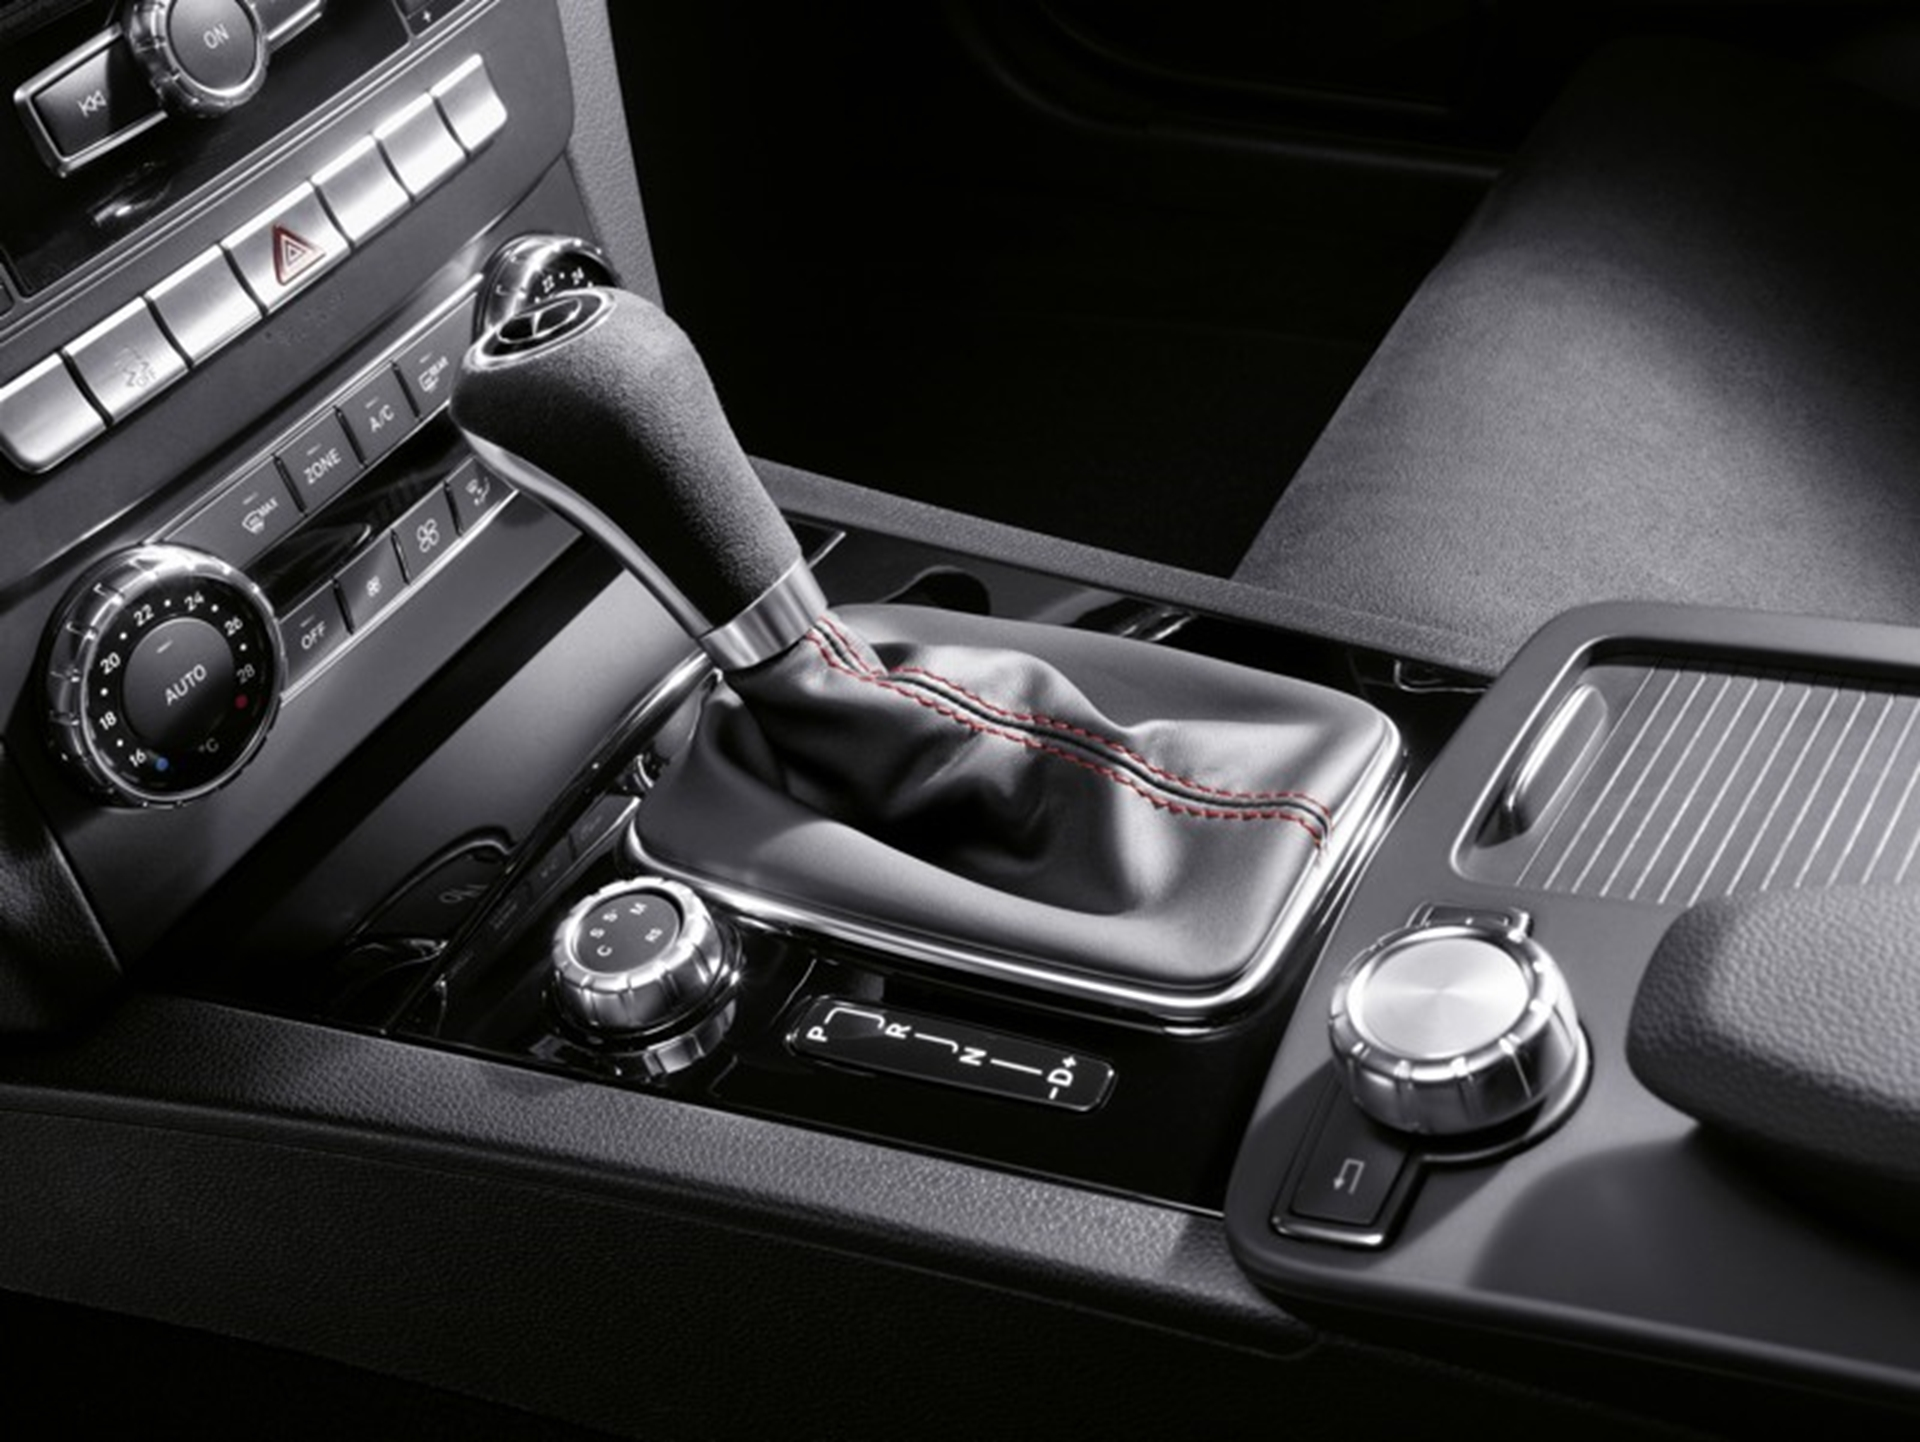 C 63 AMG Black Series 2011 Gear Shift